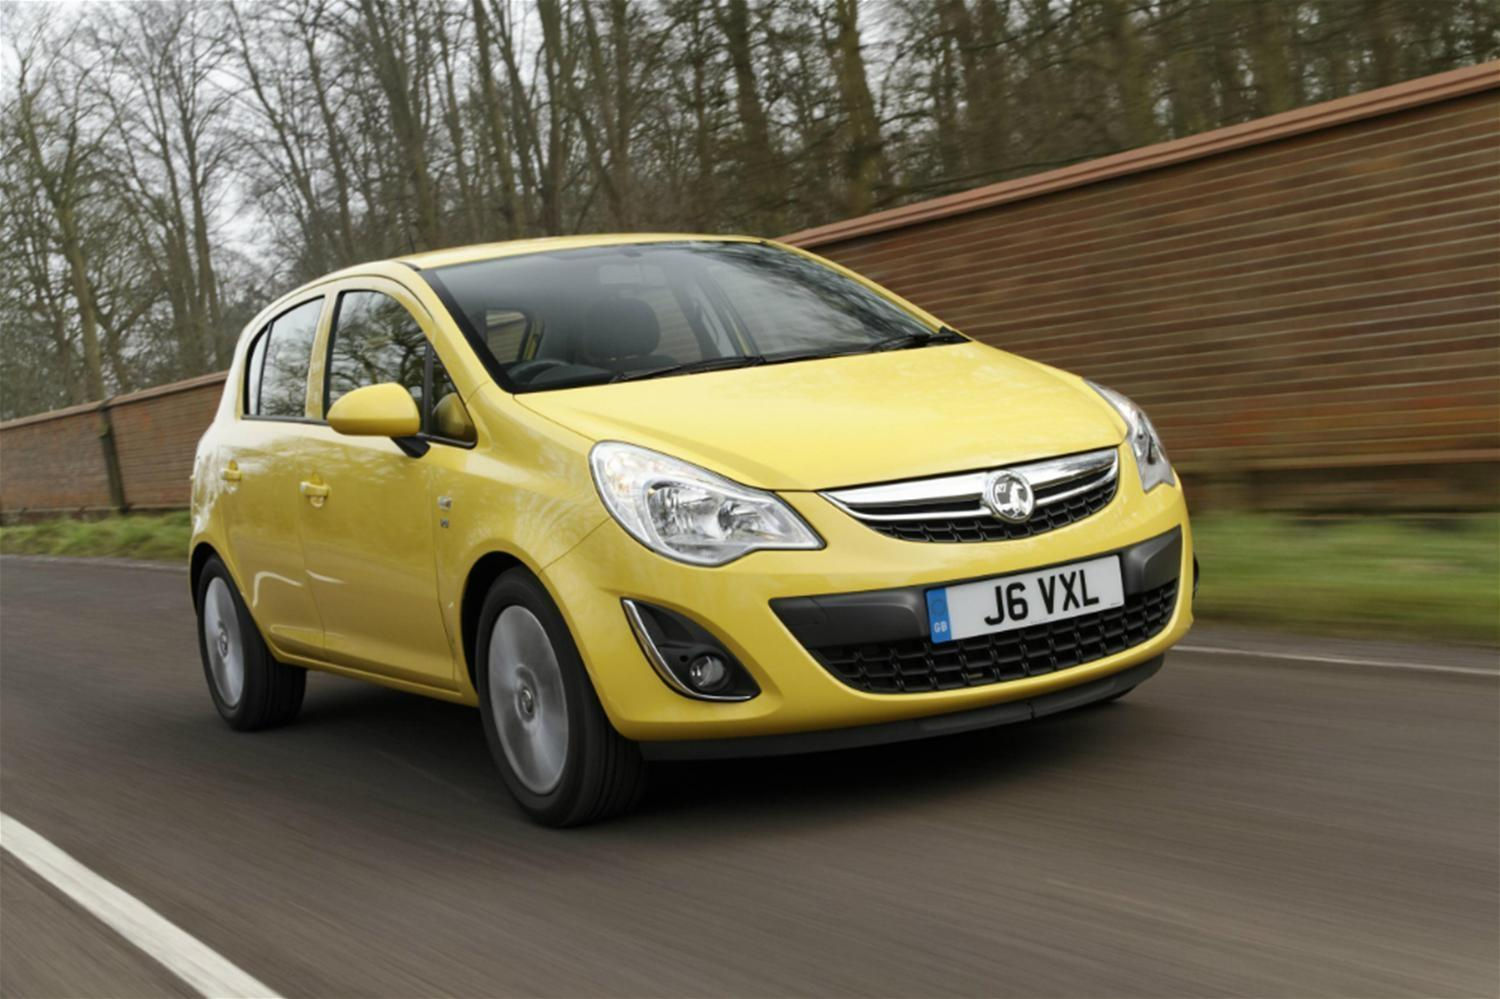 The Vauxhall Corsa specification range